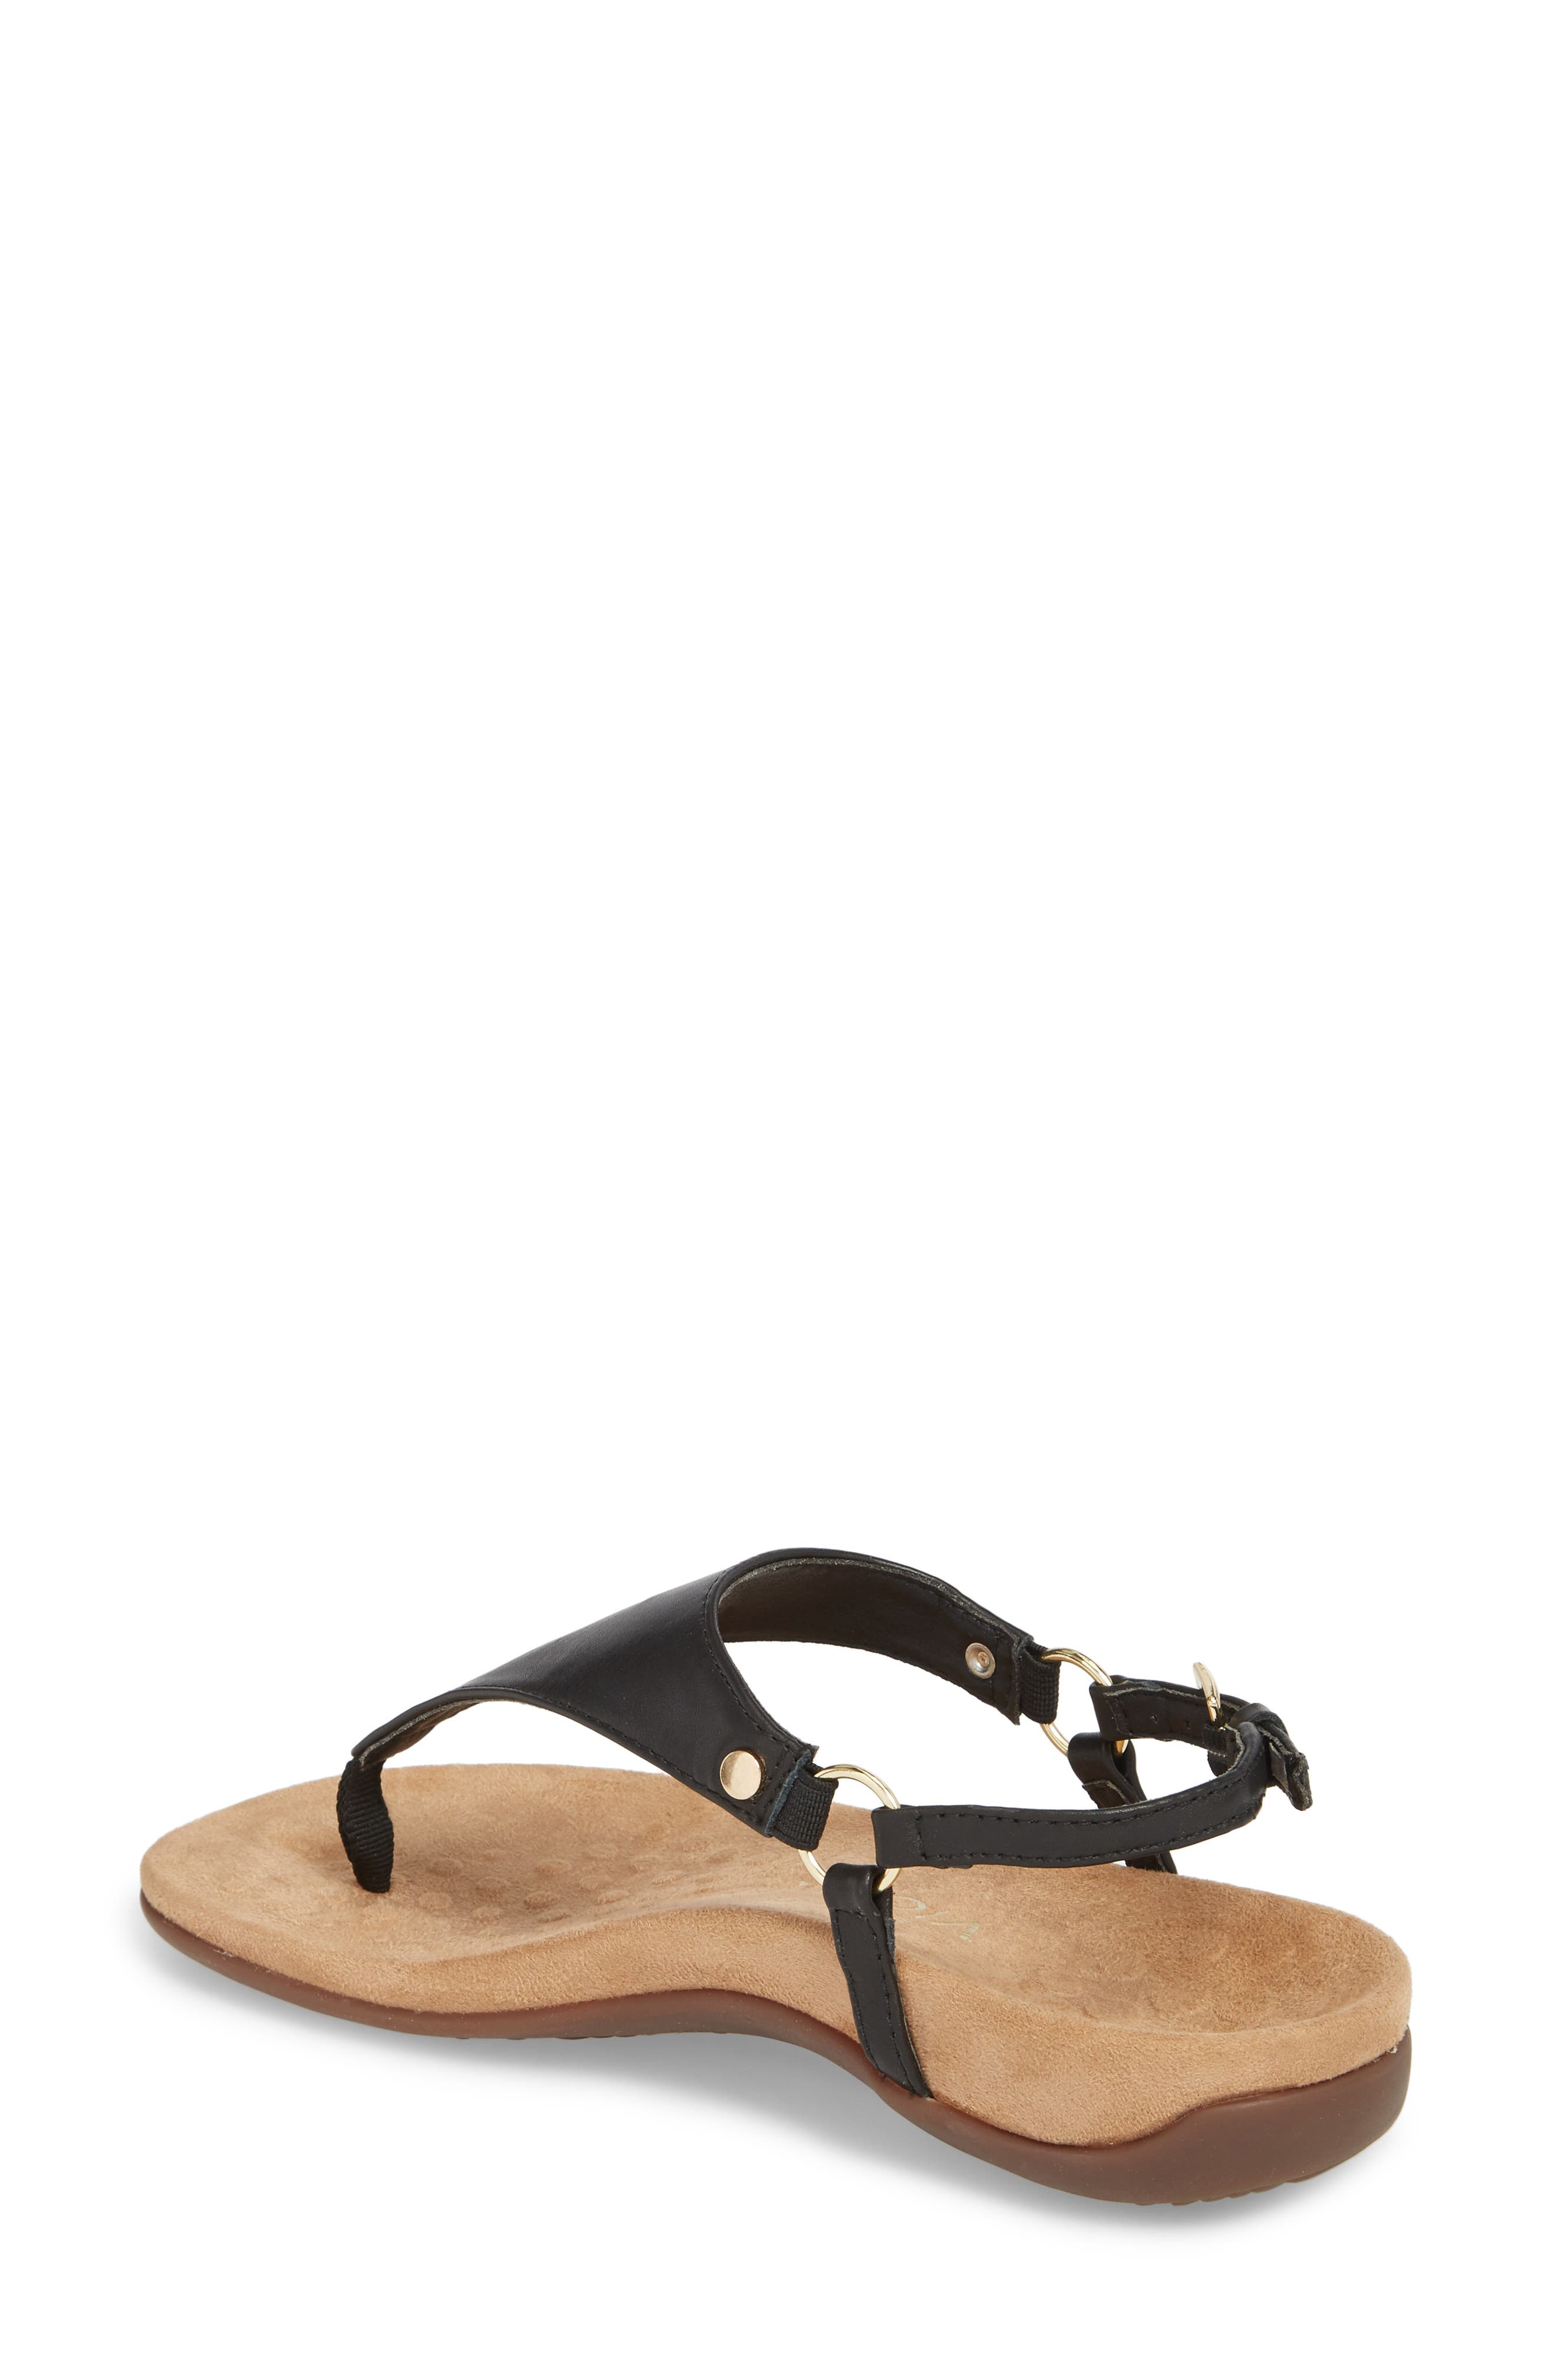 Kirra Orthaheel<sup>®</sup> Sandal,                             Alternate thumbnail 2, color,                             BLACK LEATHER